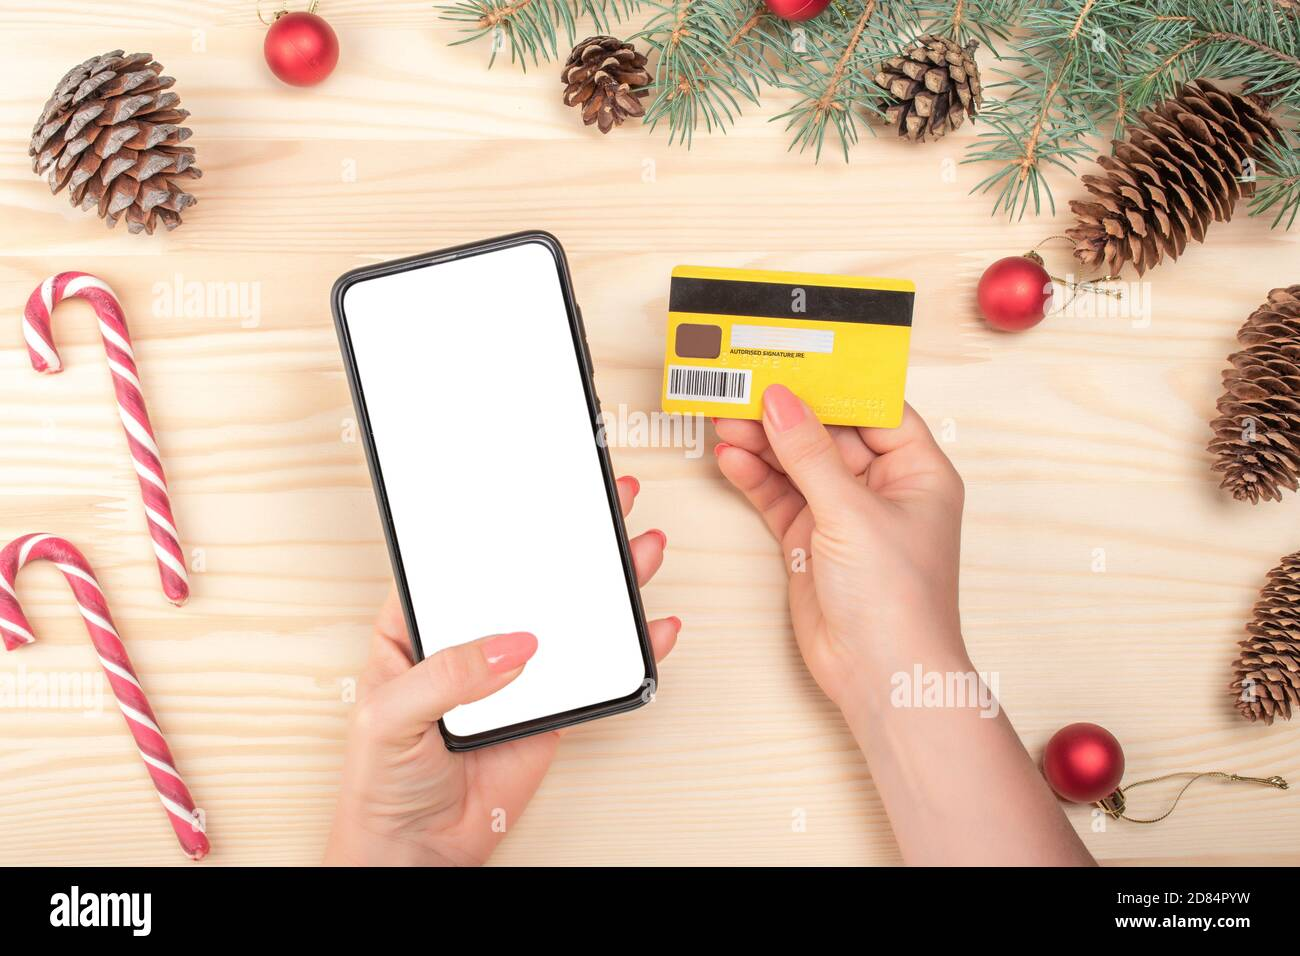 Christmas Online Shopping Concept Online Shopping Concept With Woman Hand Using Phone And Looking Credit Card For Purchase Order Product Winter Holi Stock Photo Alamy